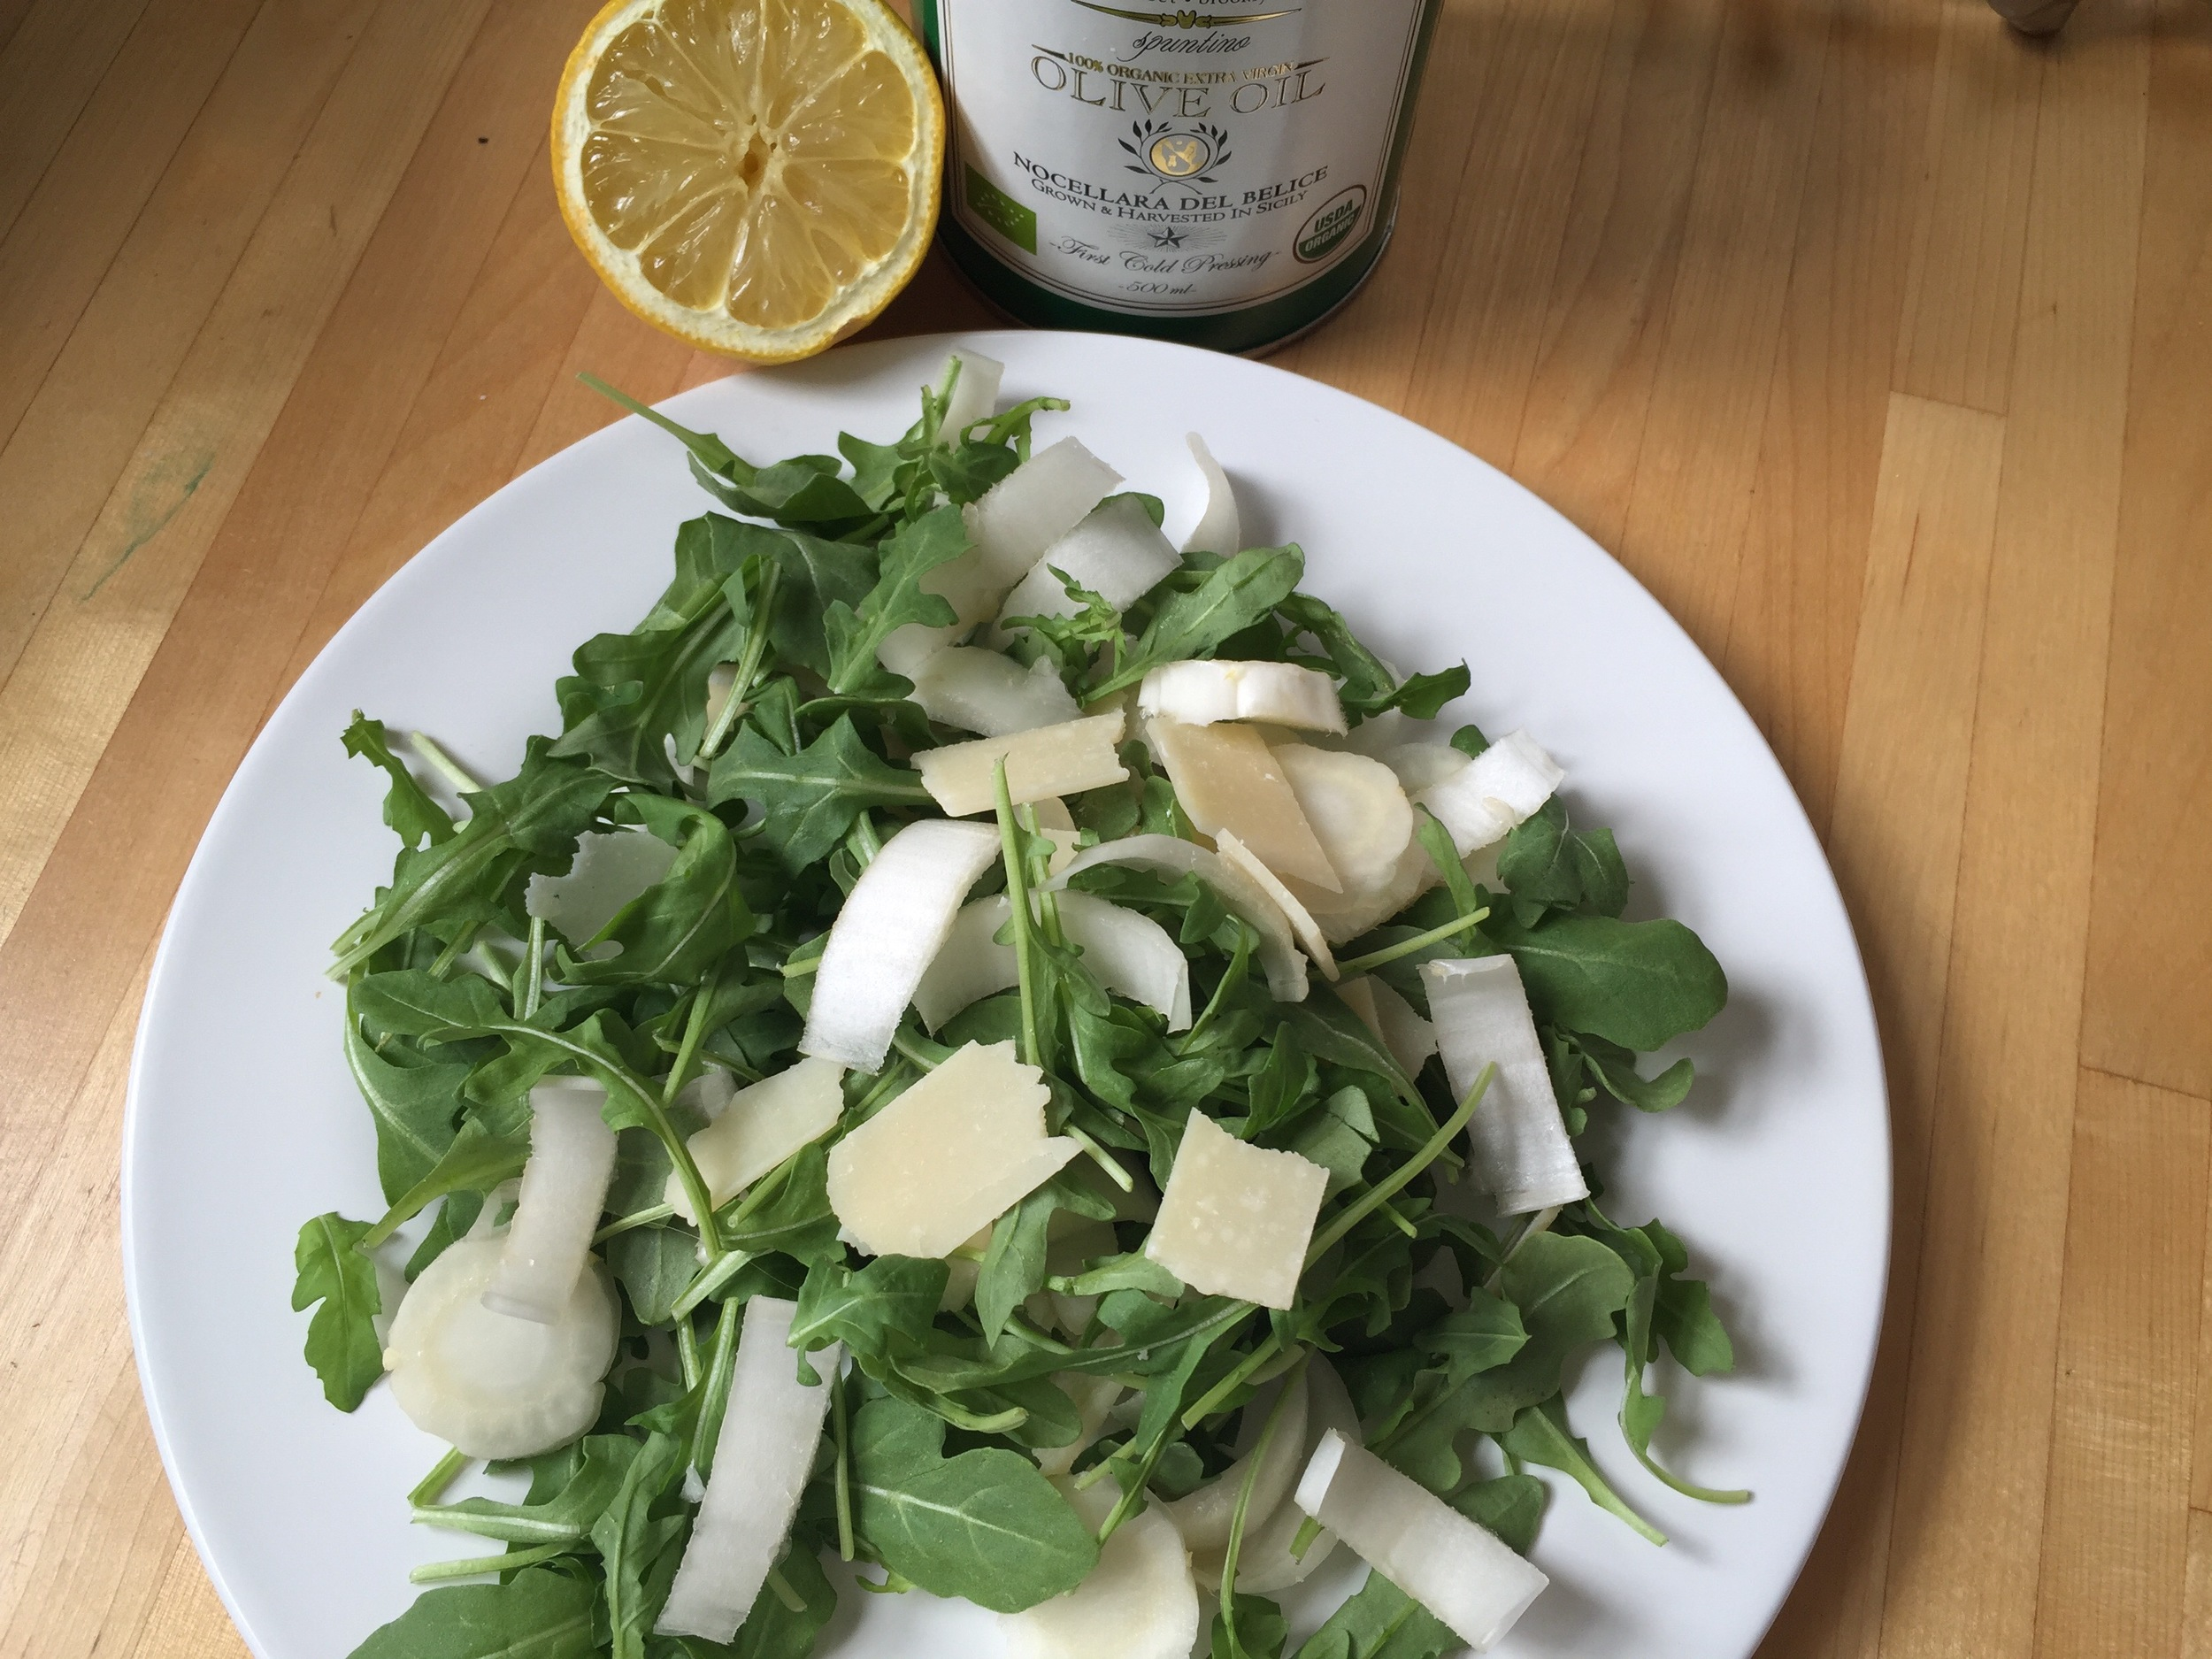 arugula salad with endive and parmesan